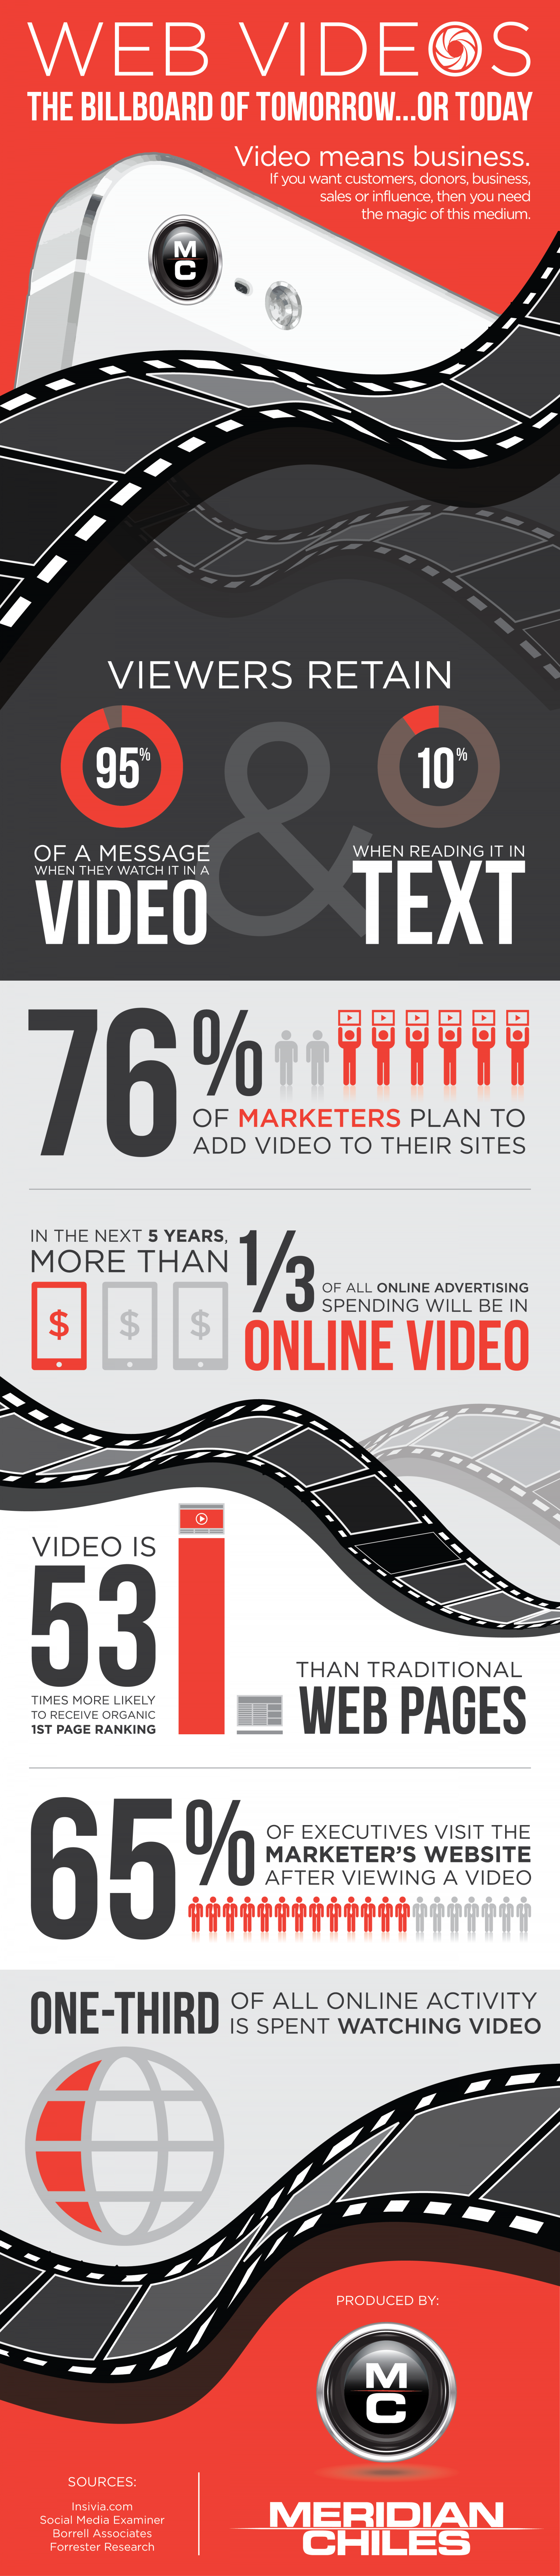 Web Videos: The Billboard of Tomorrow... or Today Infographic